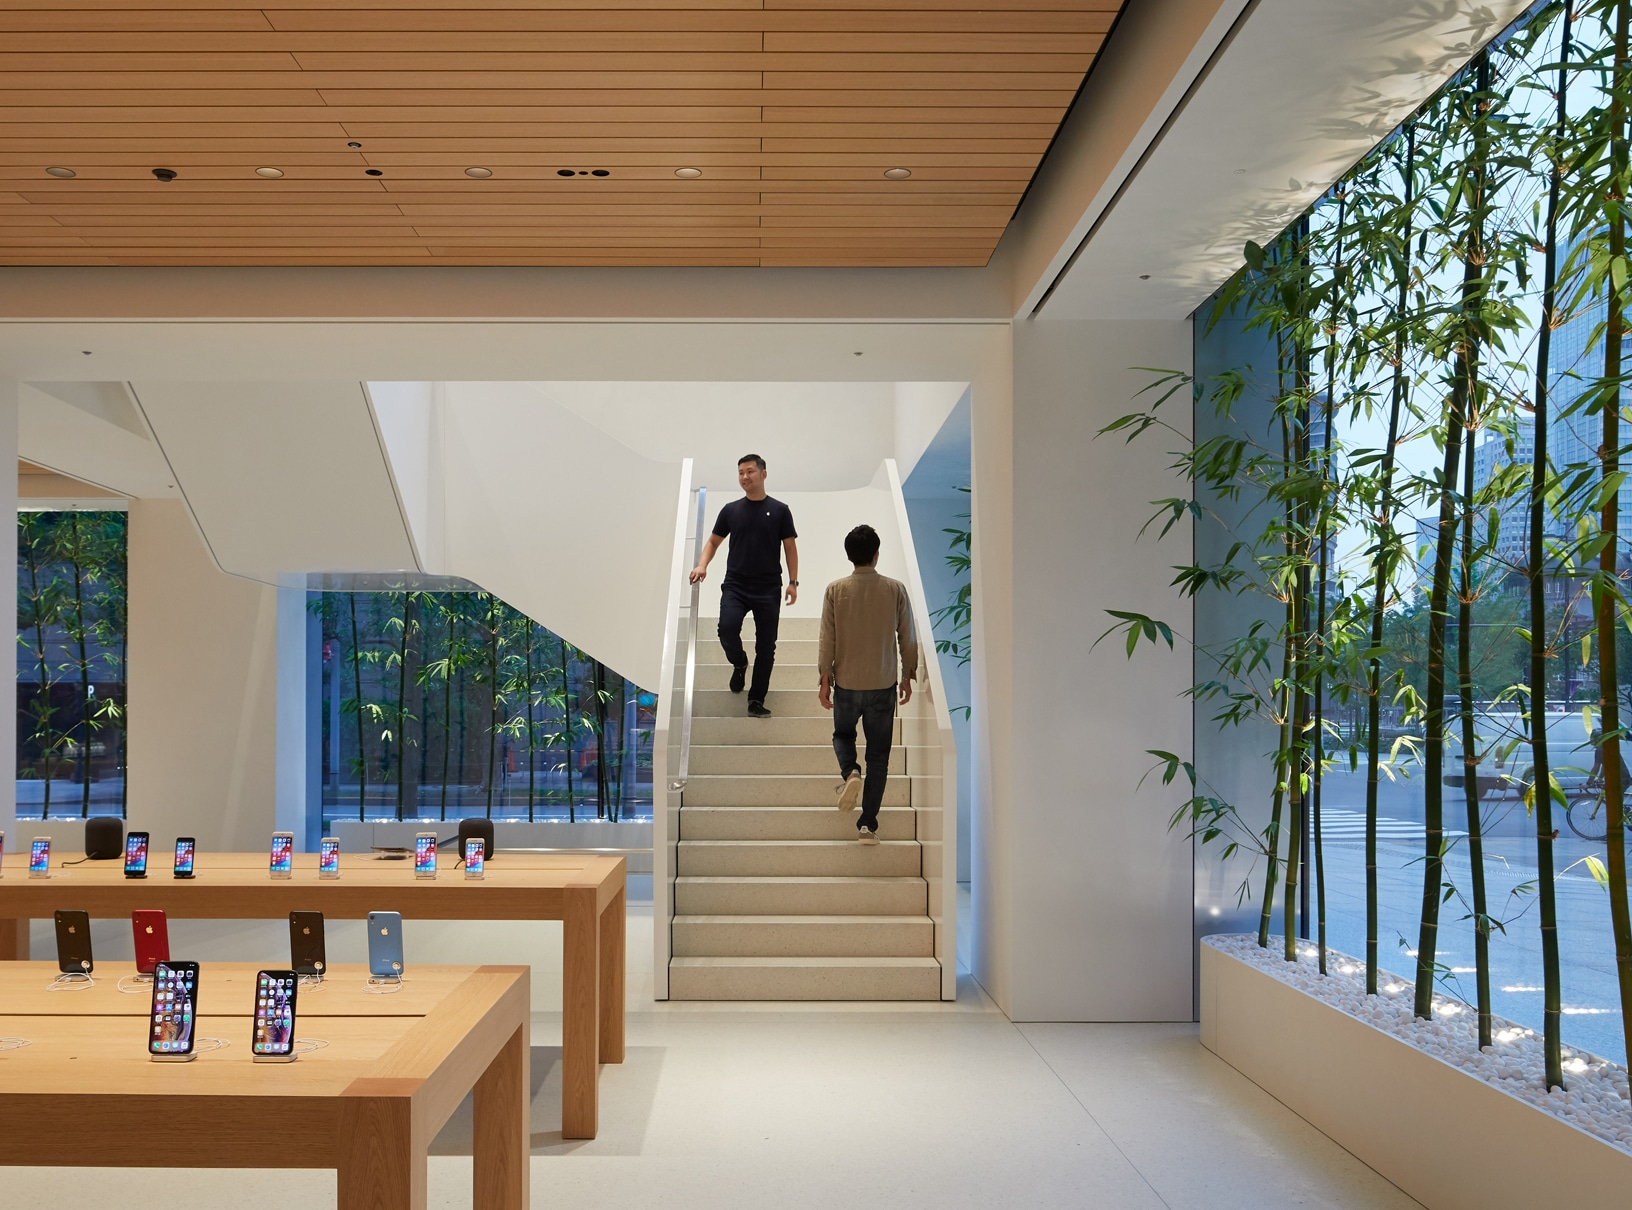 Apple-largest-store-in-Japan-opens-saturday-in-Tokyo-team-members-on-stairs-090419